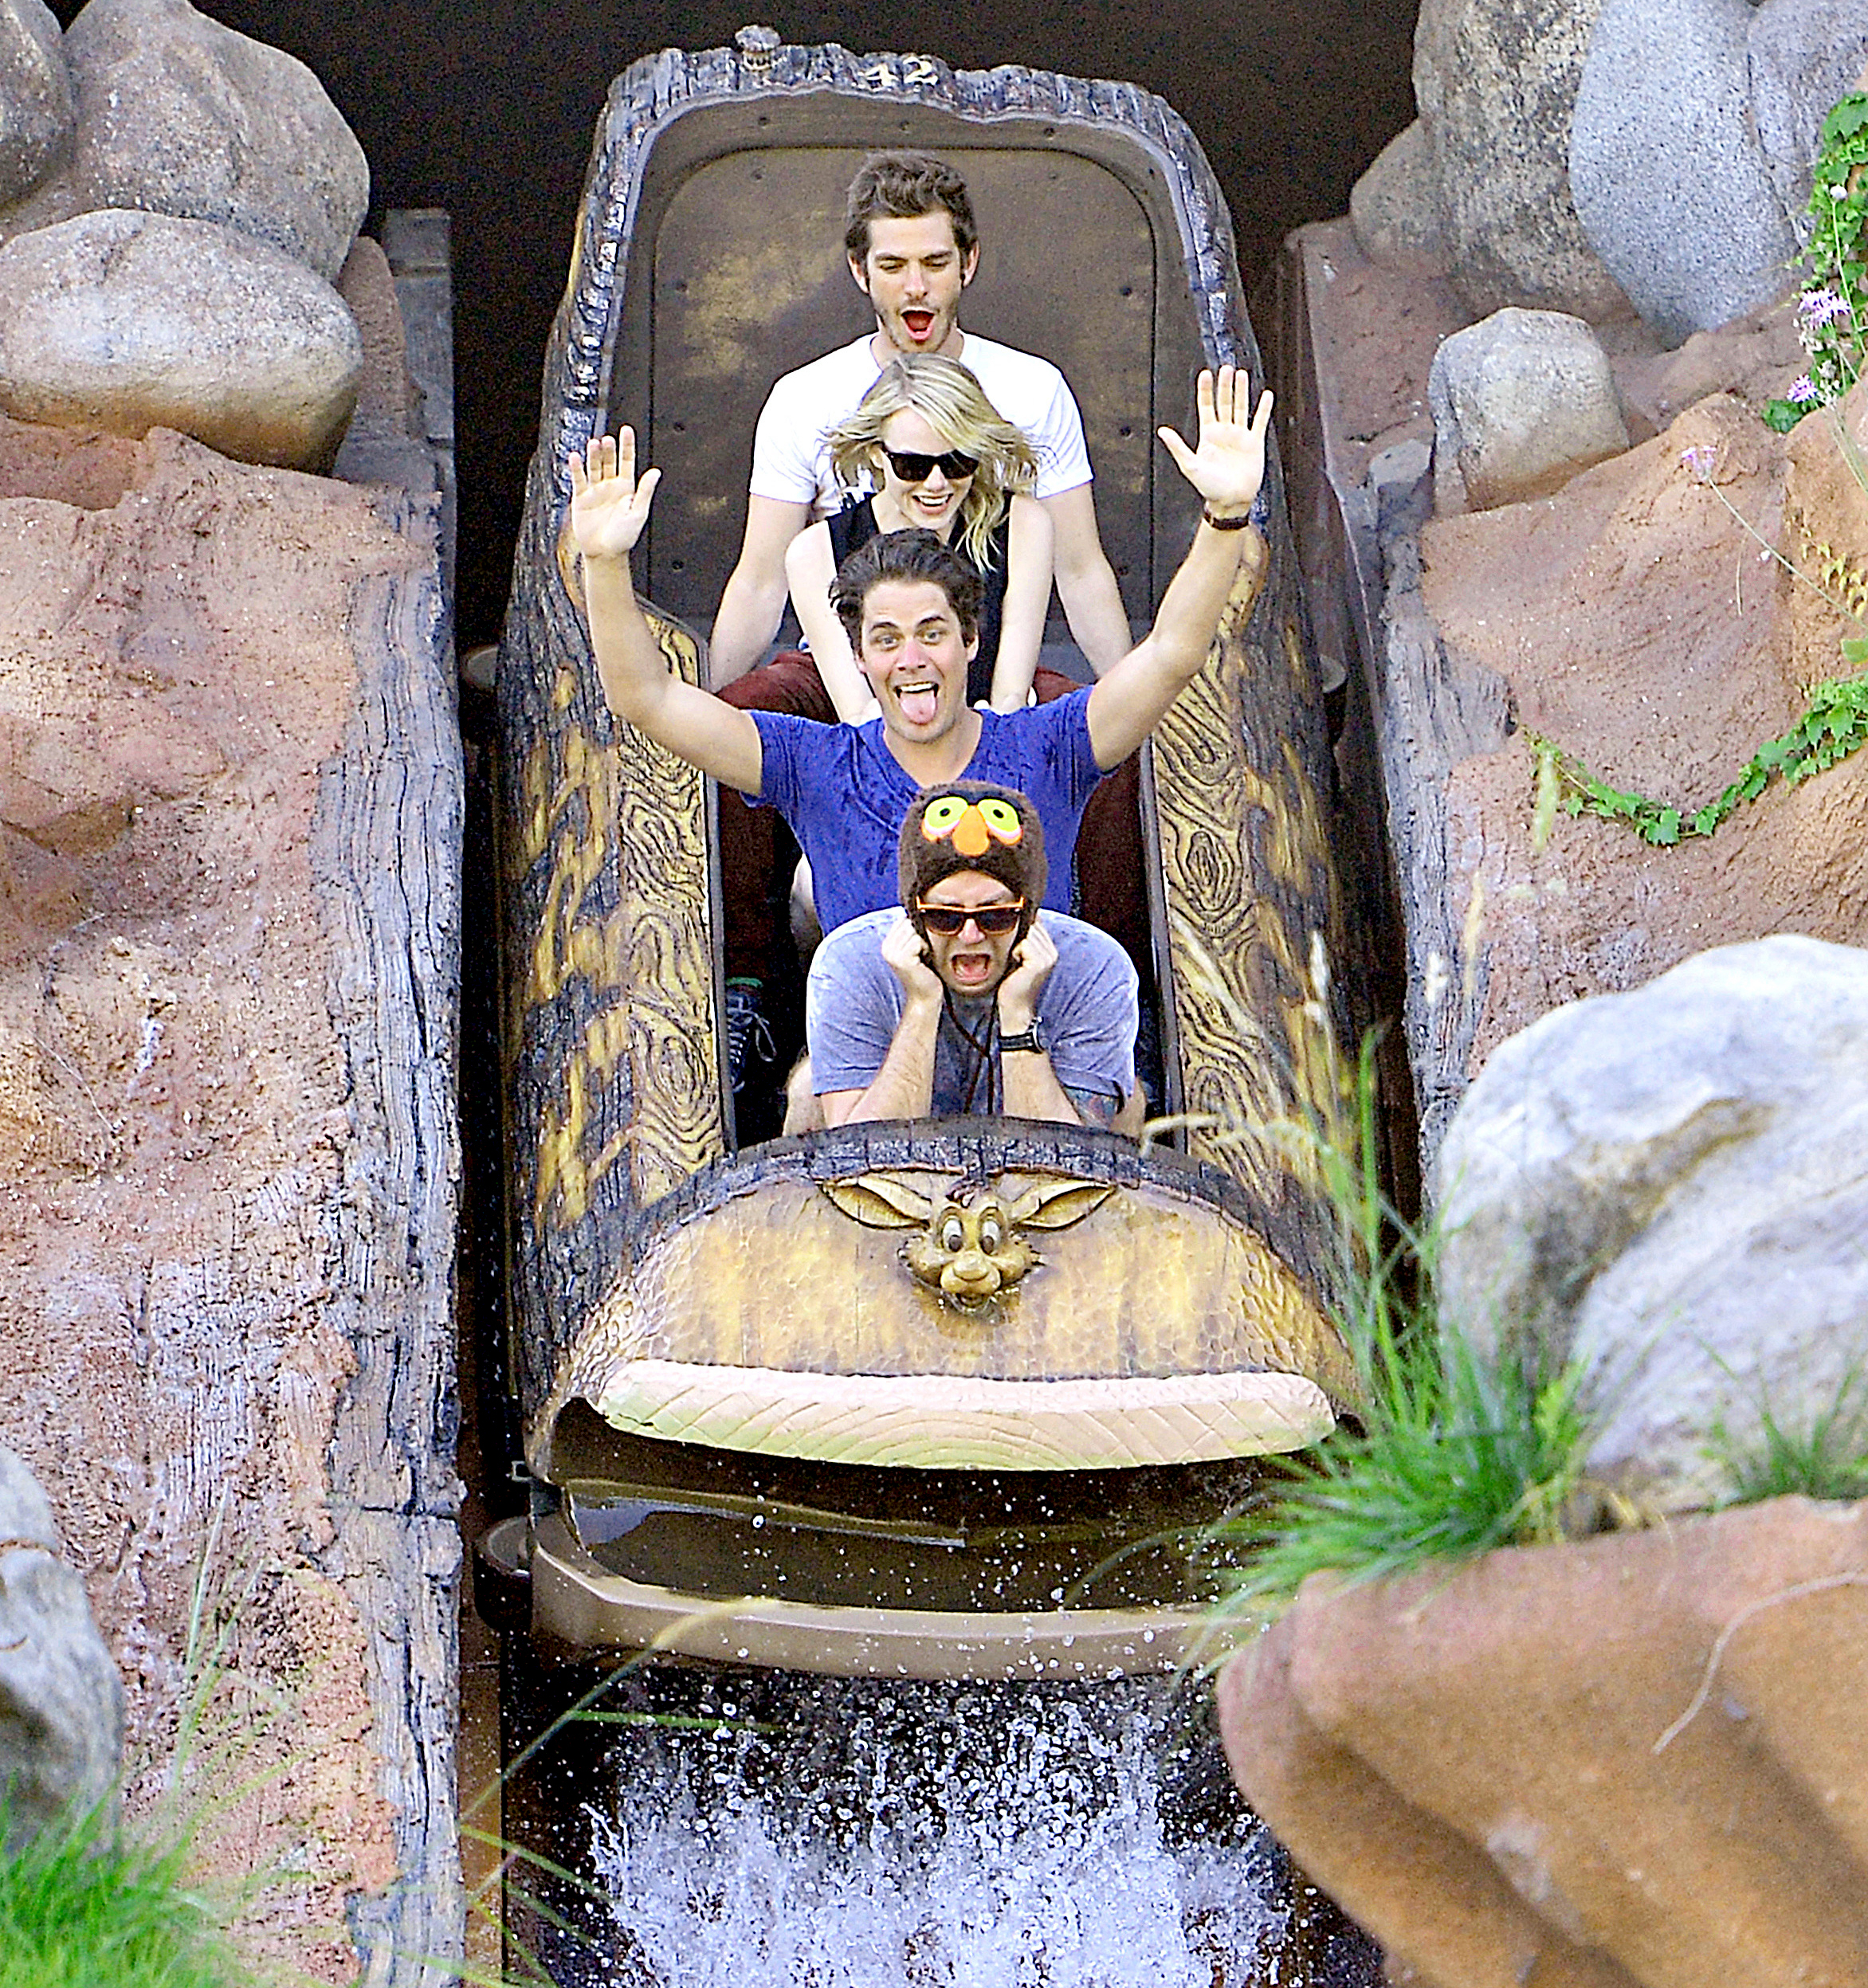 Andrew Garfield continued his birthday celebration with a day at Disneyland with Emma Stone and friends in 2012.